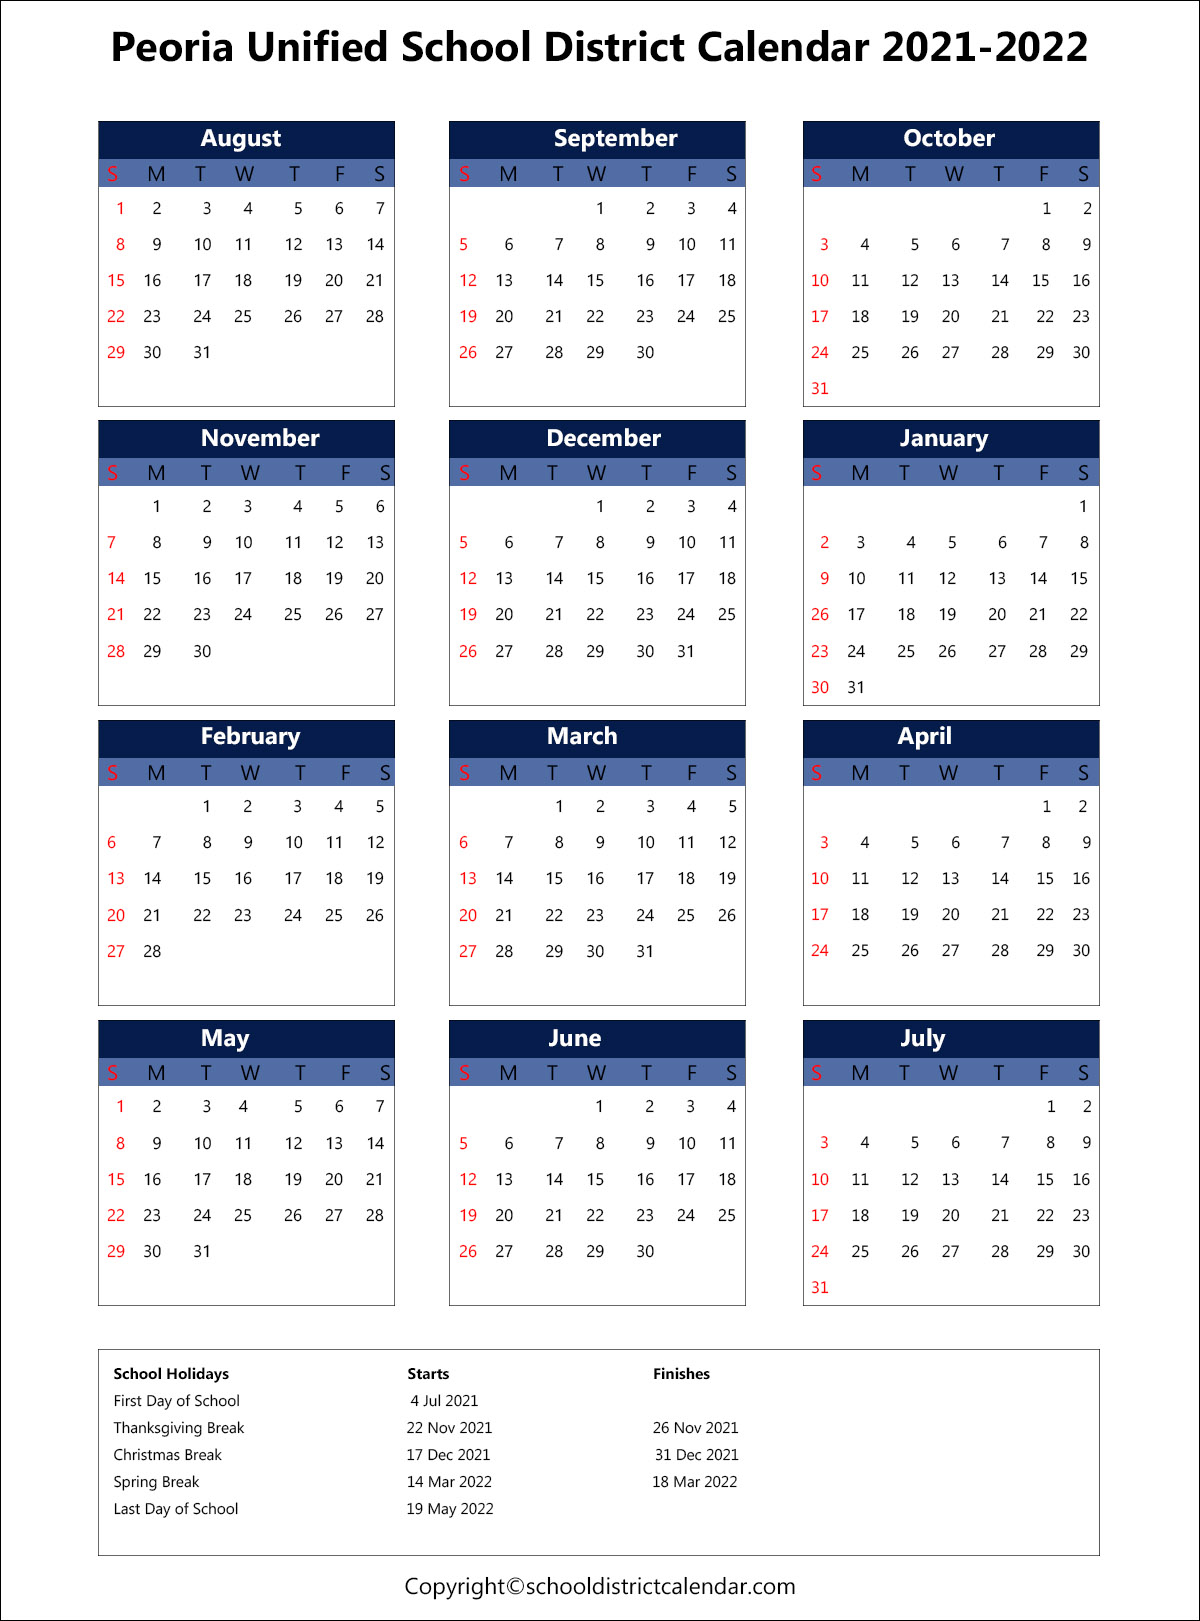 Peoria Unified School District Calendar 2021